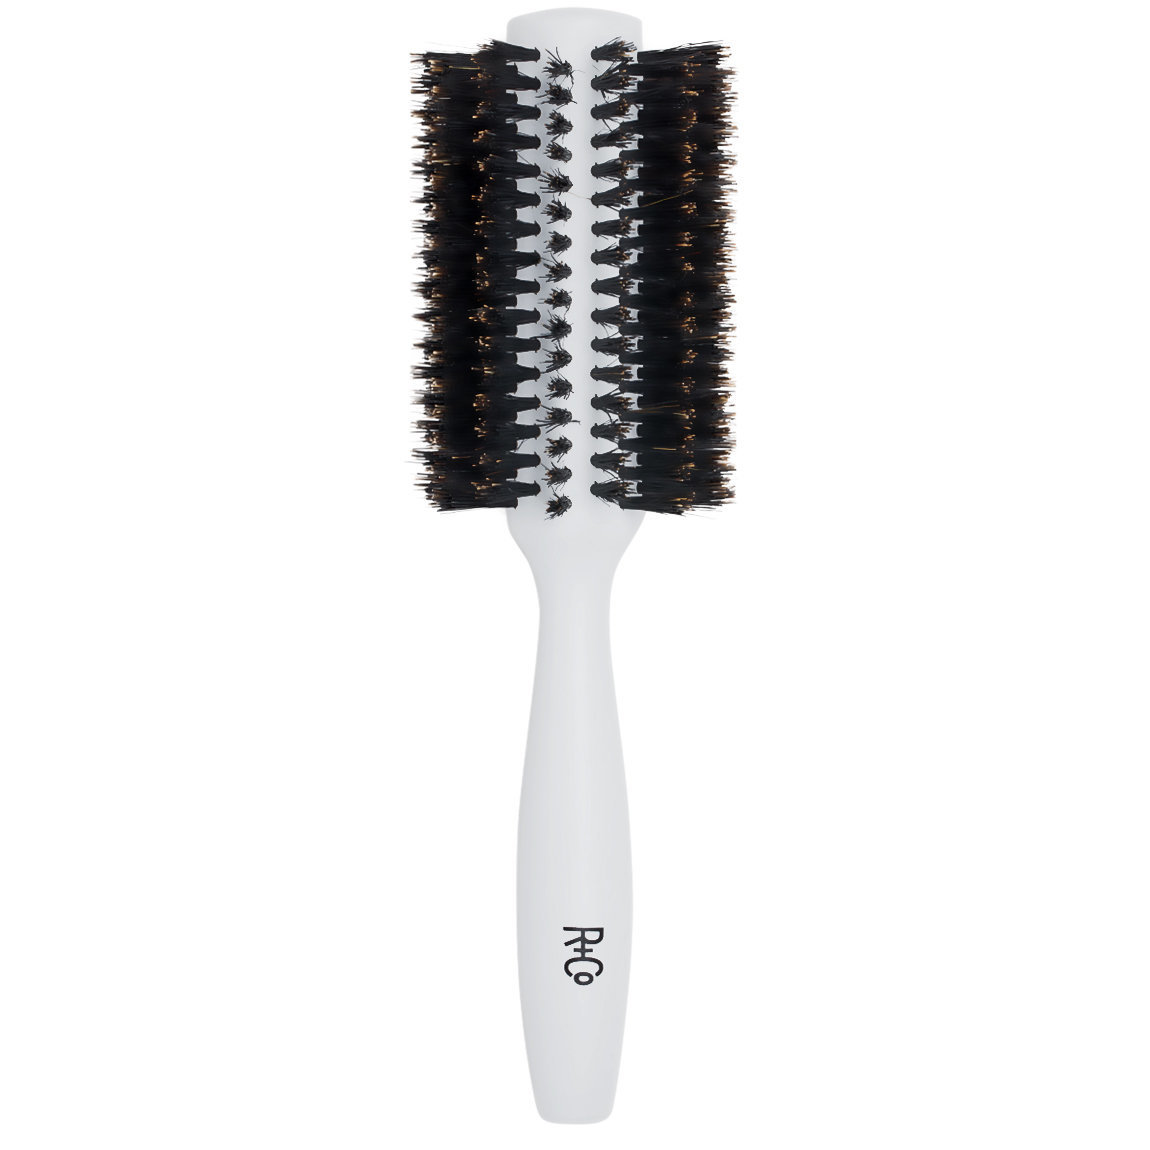 R+Co Round Brush 4 product smear.